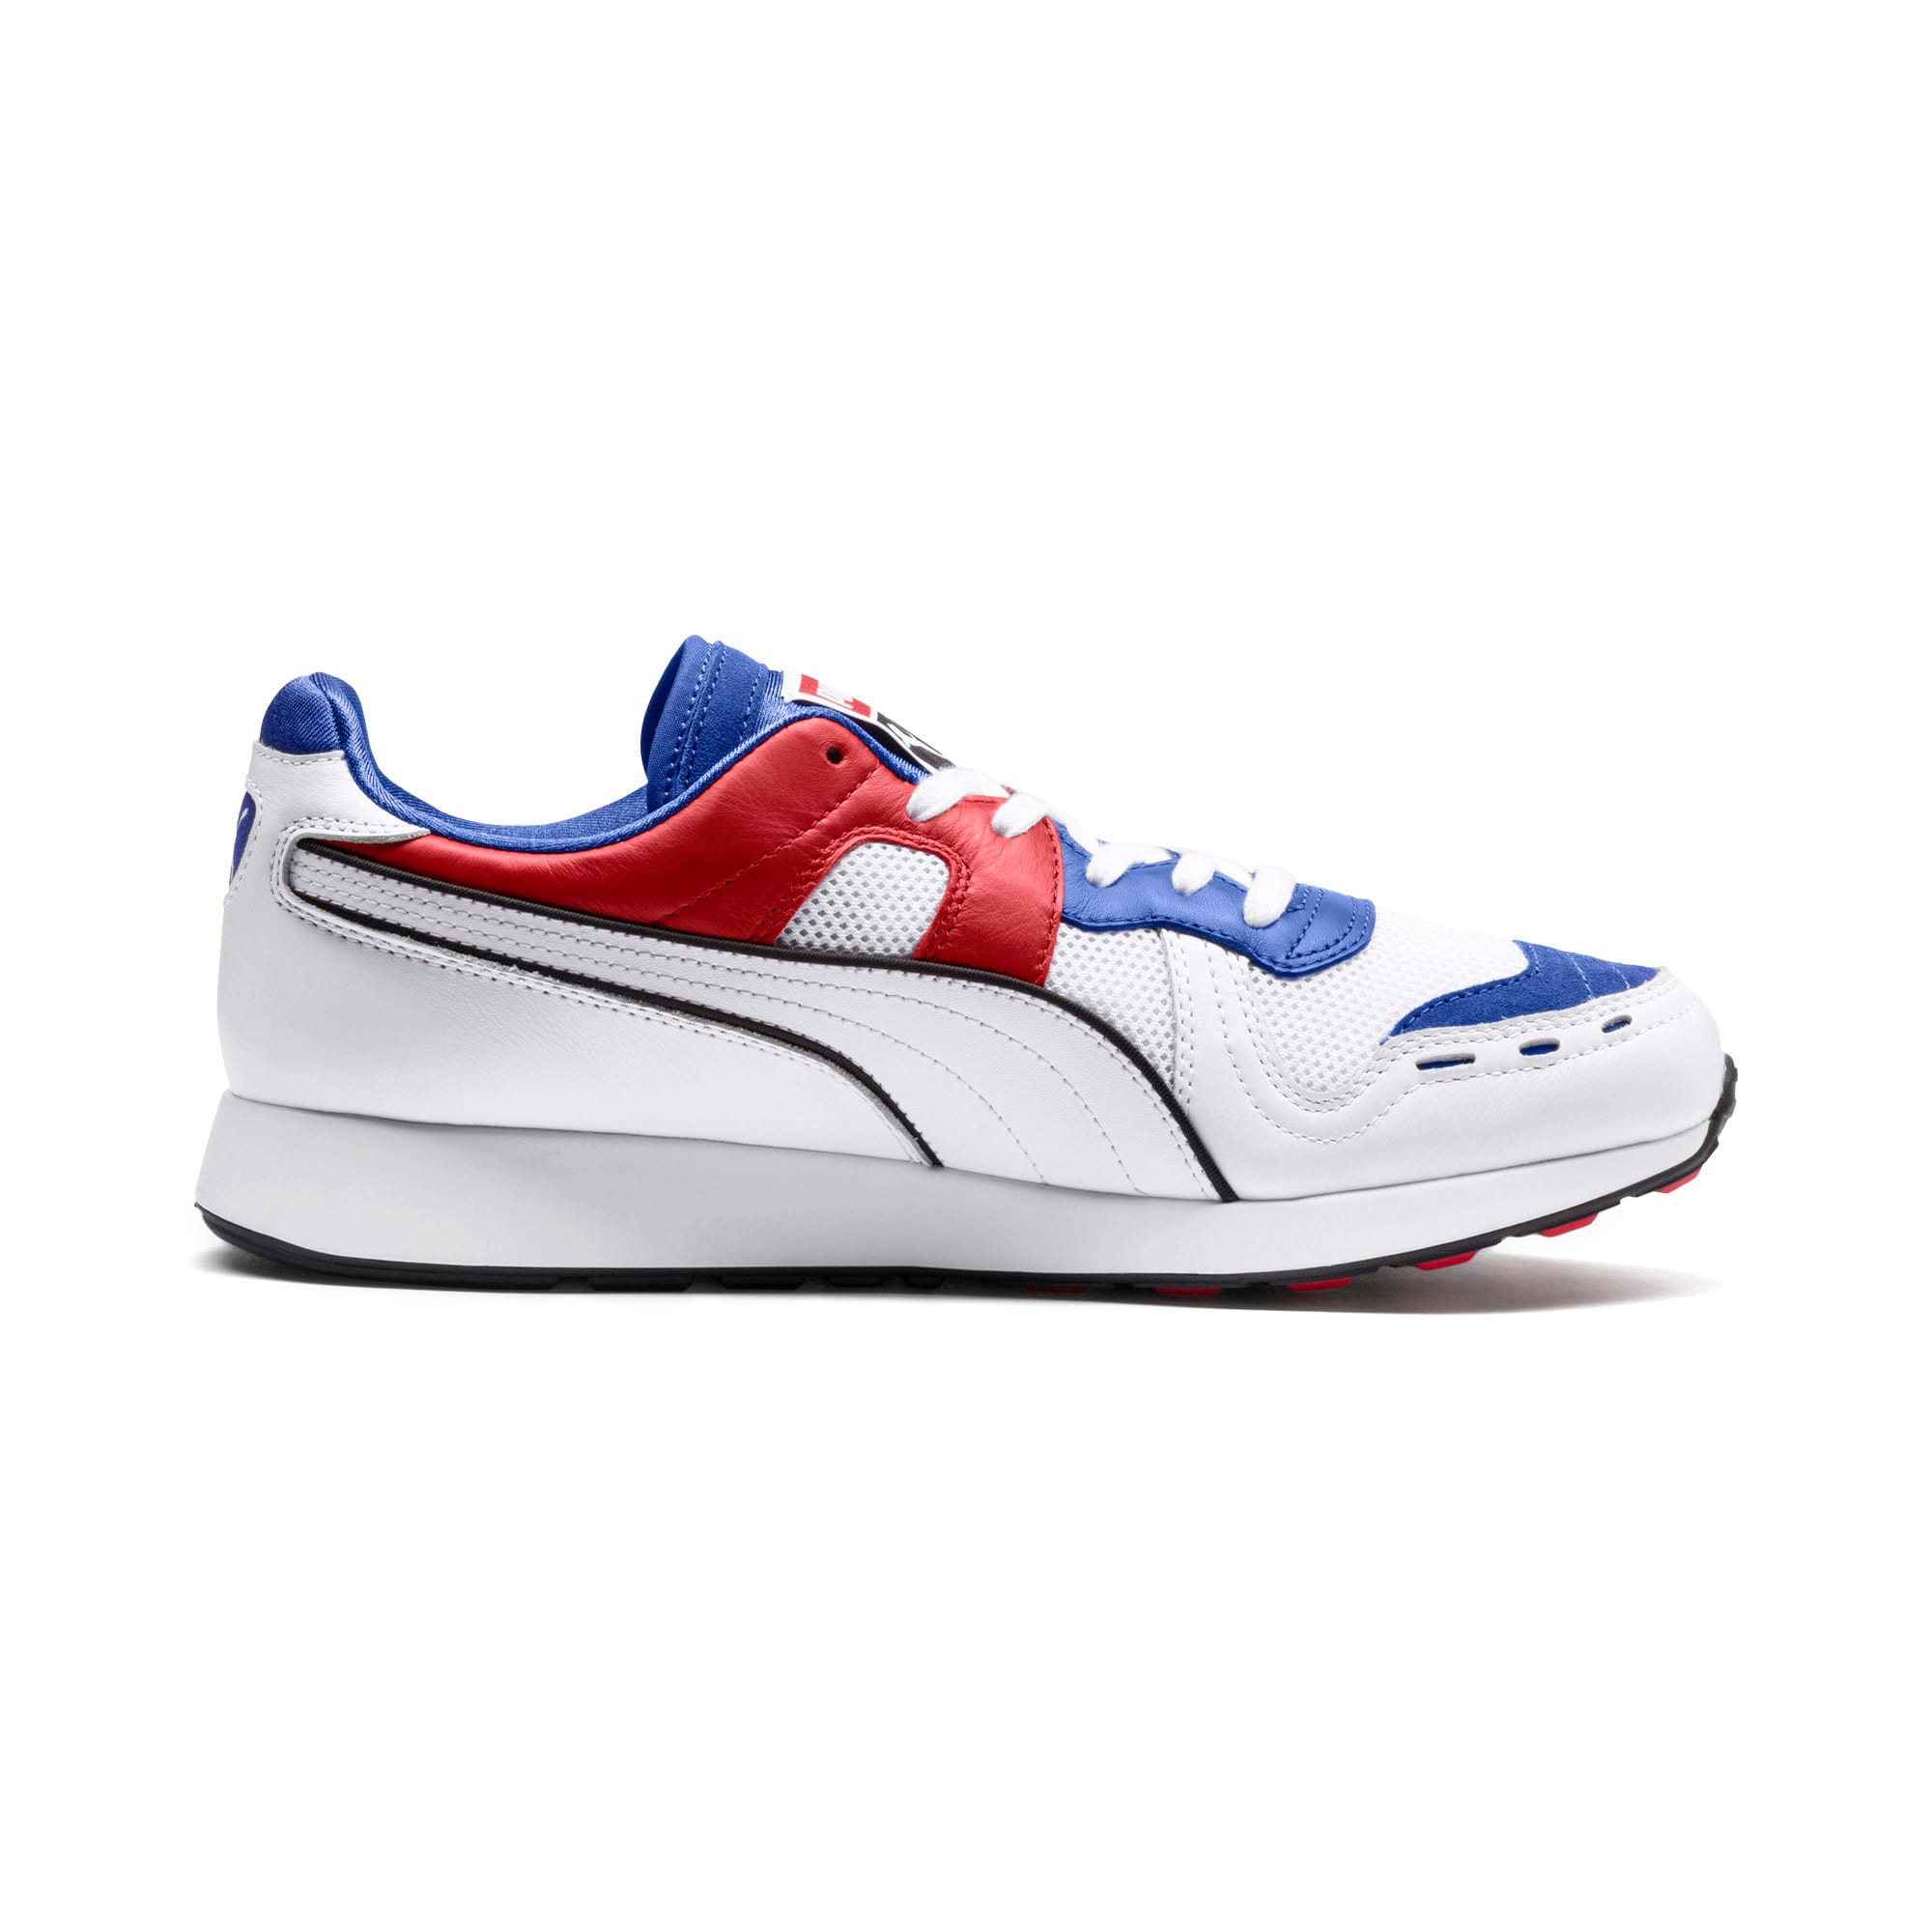 Thumbnail 5 of RS-100 Sound Men's Sneakers, Dazzlin Blu-HghRiskRed-White, medium